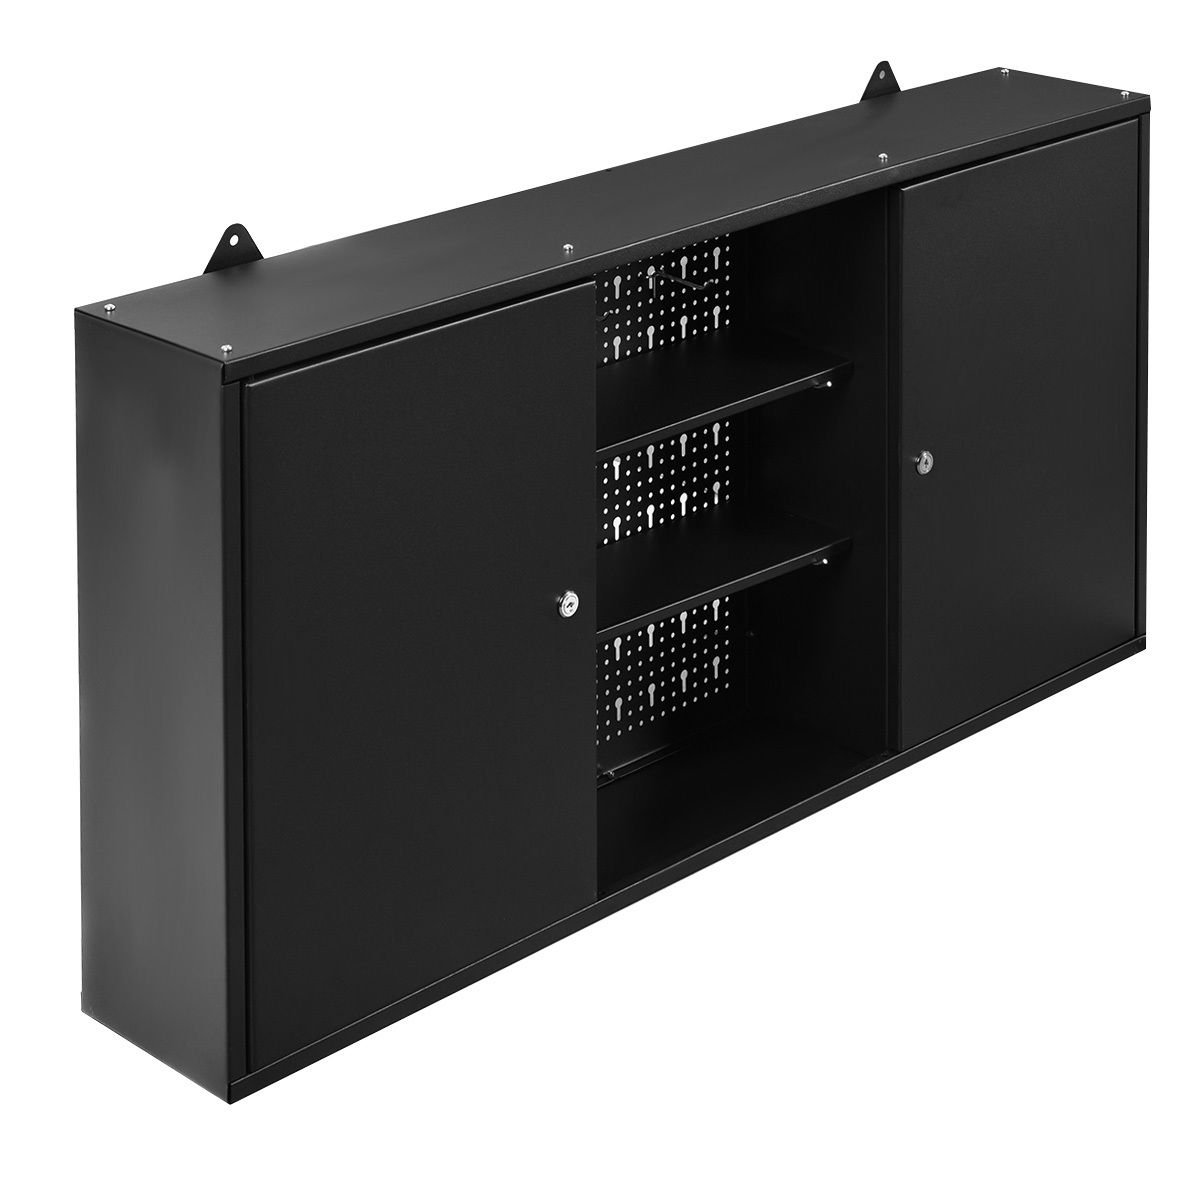 New Black Wall Mount Hanging Tool Box Storage Cabinet Lock Home Office Garage by totoshop (Image #1)